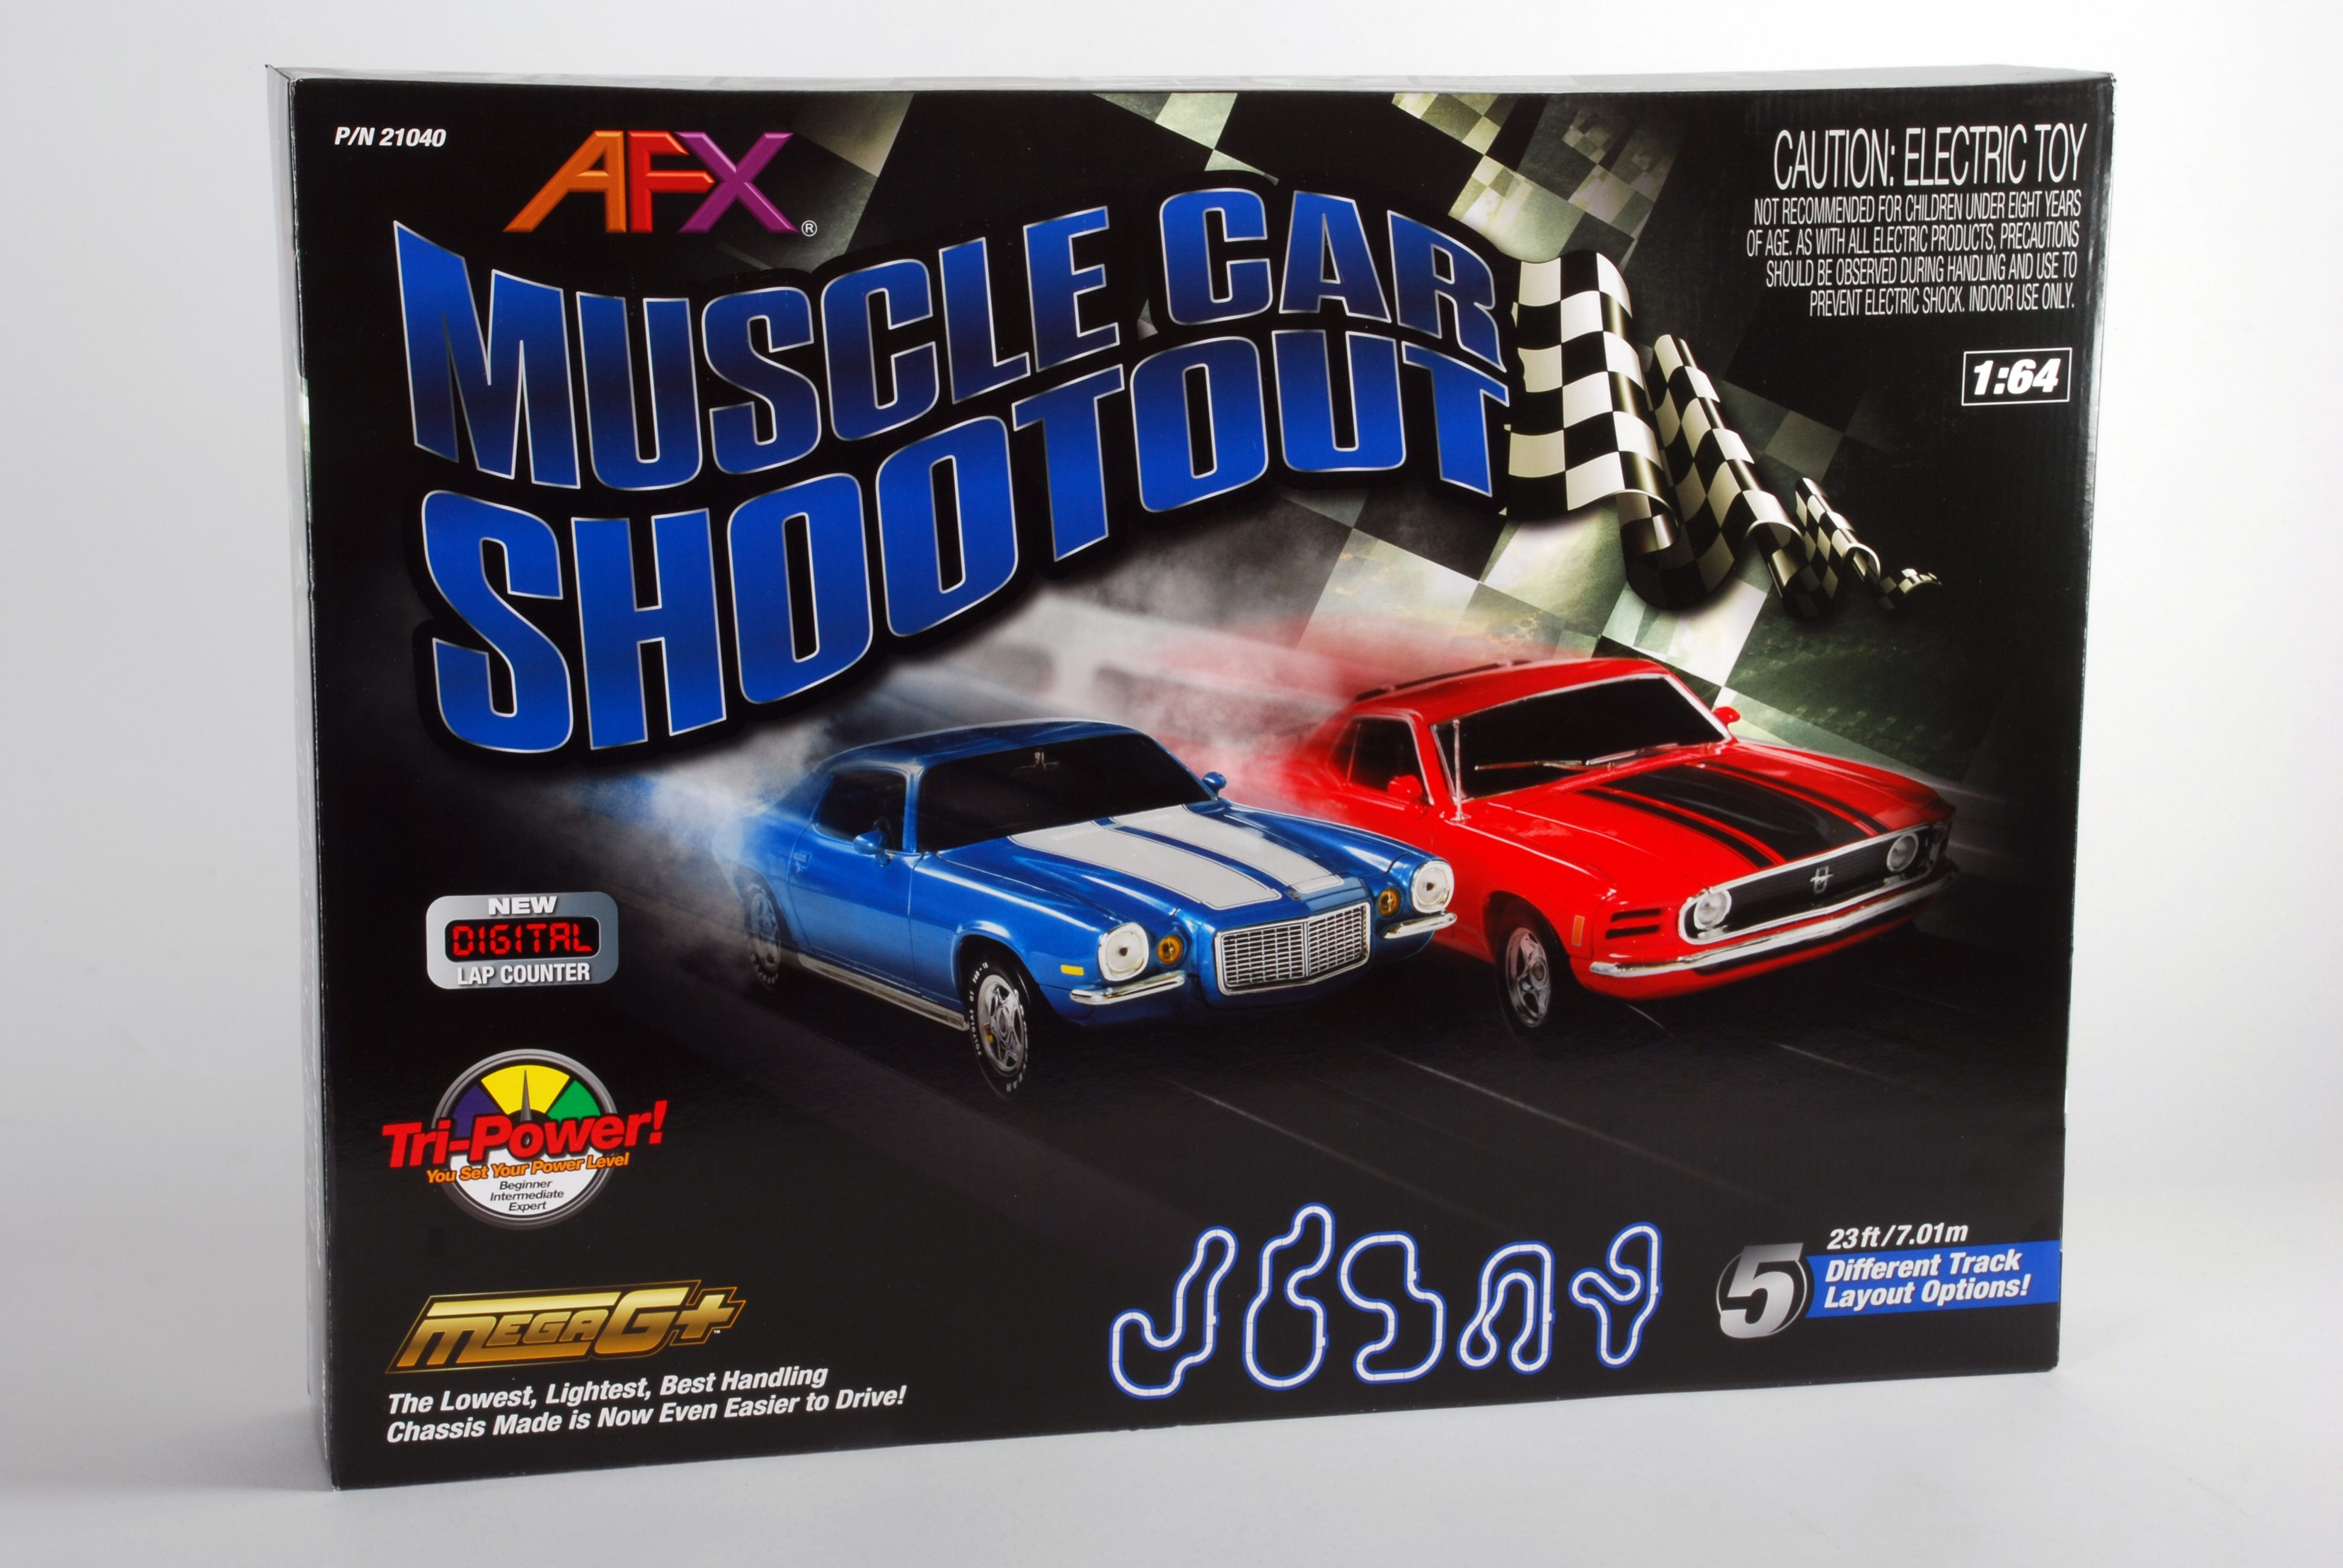 Muscle Car Shootout – AFX RACING